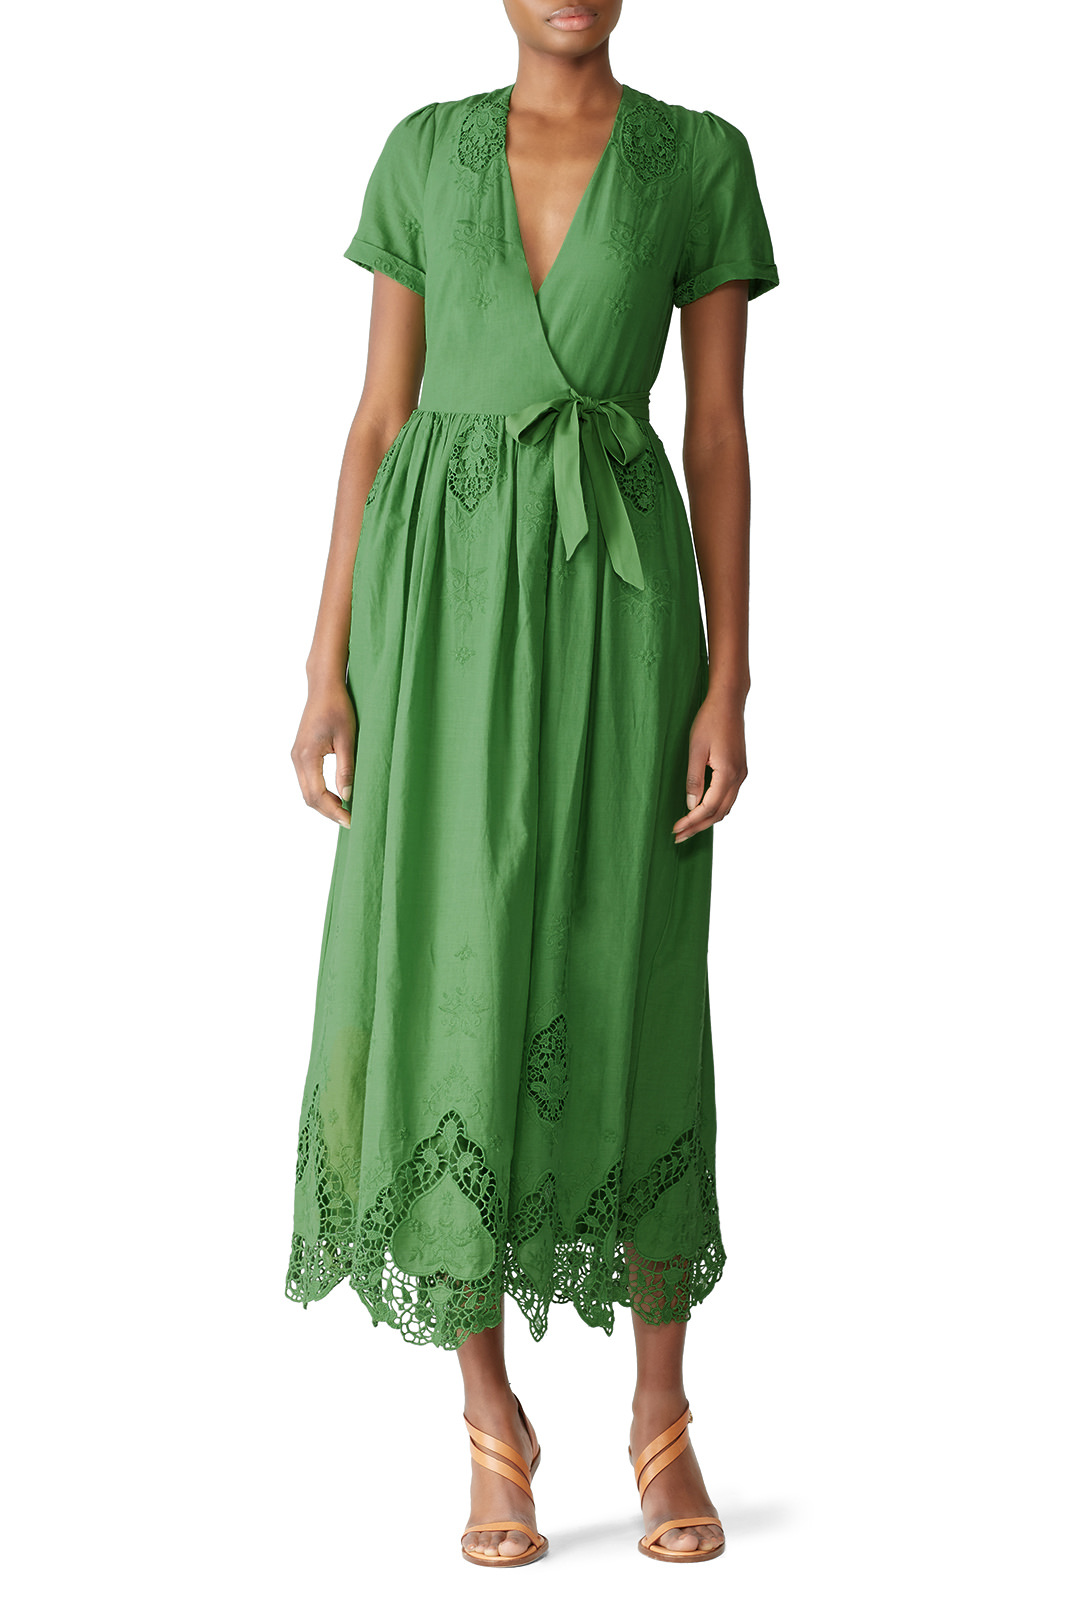 The Jetset Diaries Limelight Maxi